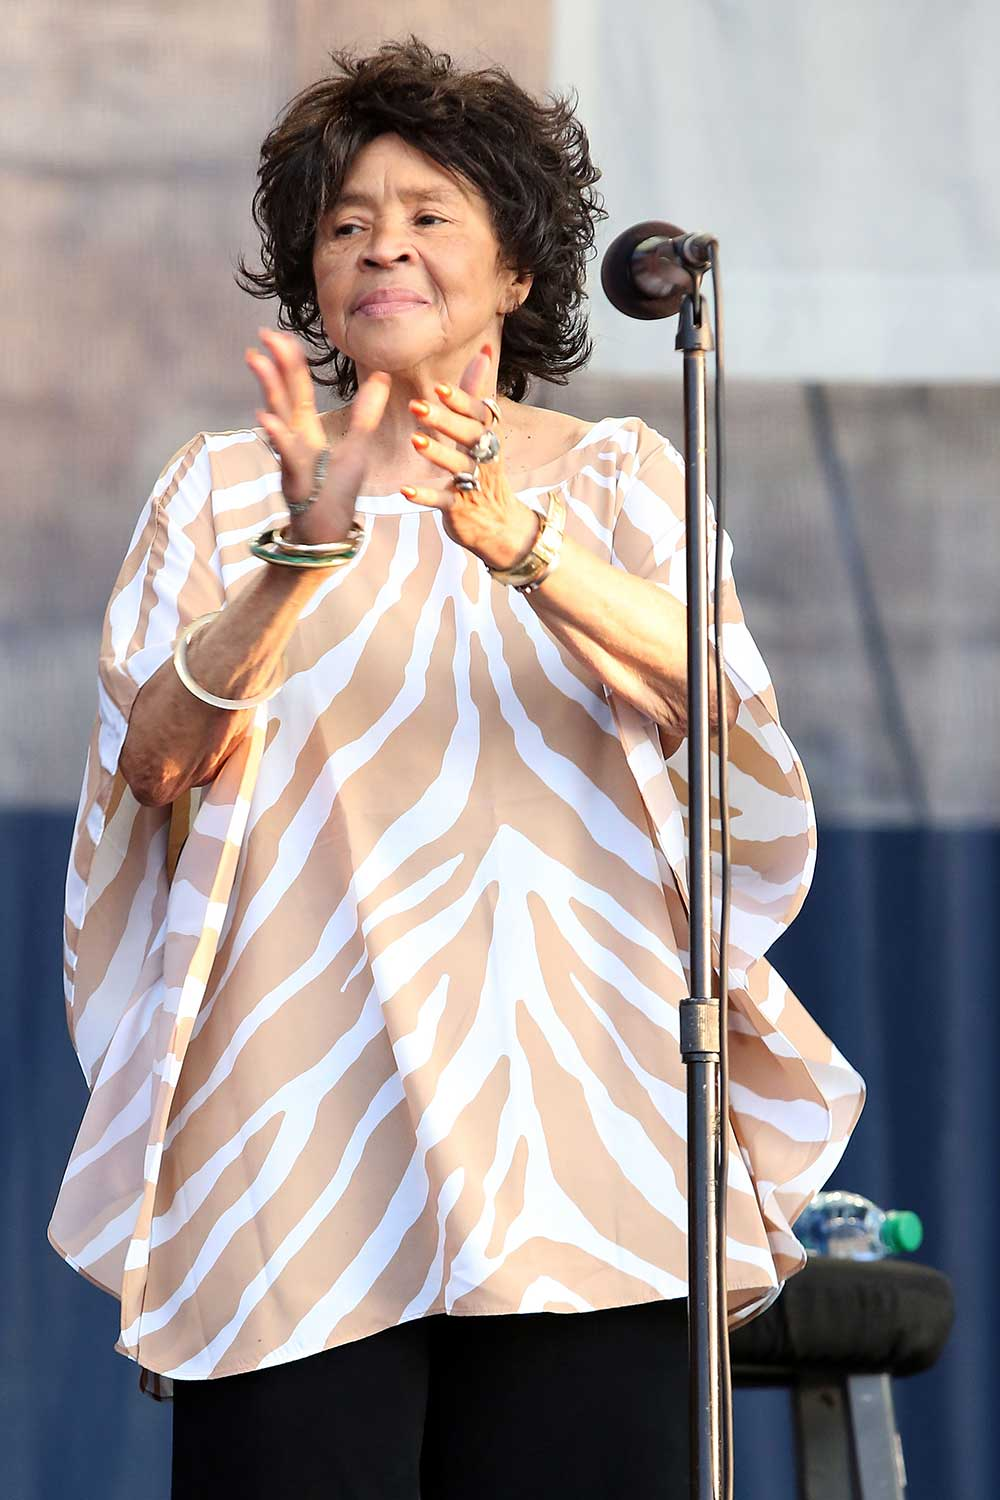 "<div class=""meta image-caption""><div class=""origin-logo origin-image none""><span>none</span></div><span class=""caption-text"">Yvonne Staples of the family gospel group Staples Singers died at age 80. (Taylor Hill/WireImage via Getty)</span></div>"